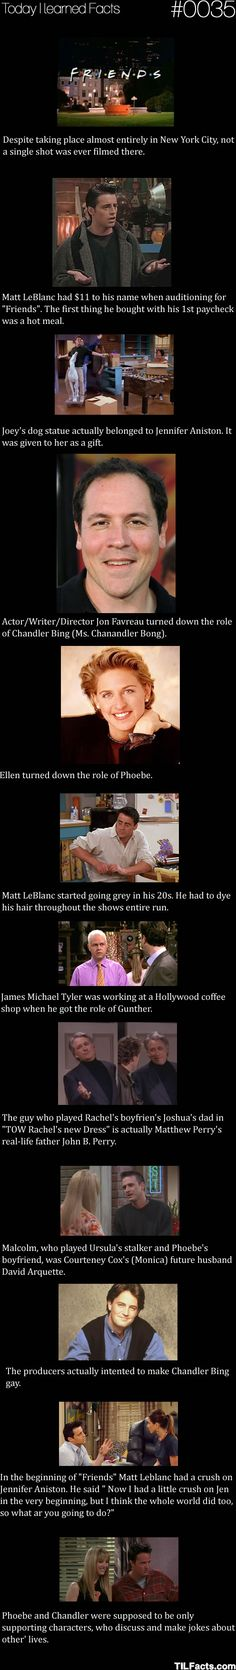 "Some interesting facts about ""Friends"""